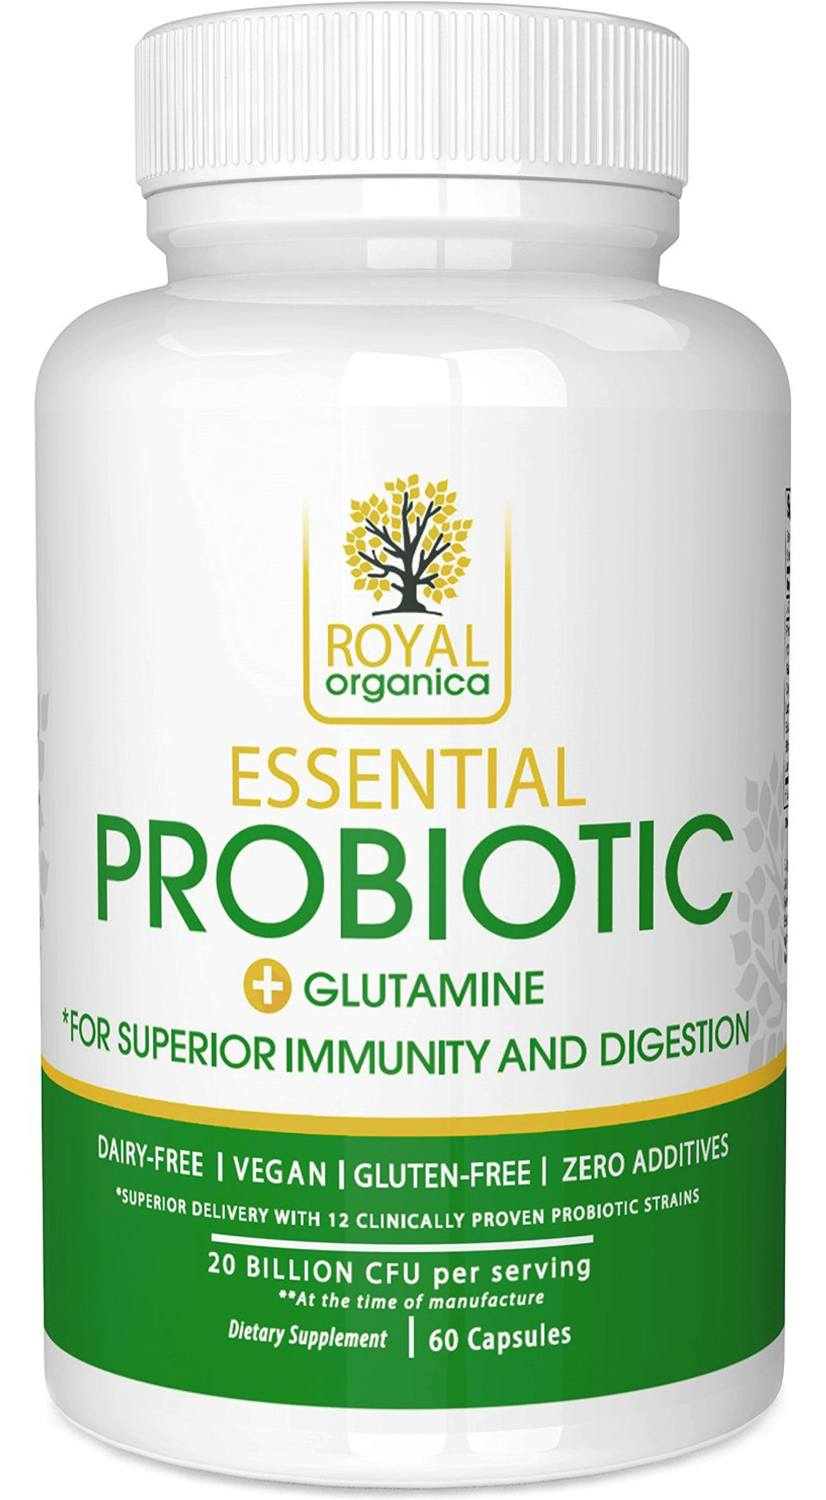 The Best Probiotic Foods And Supplements For Weight Loss